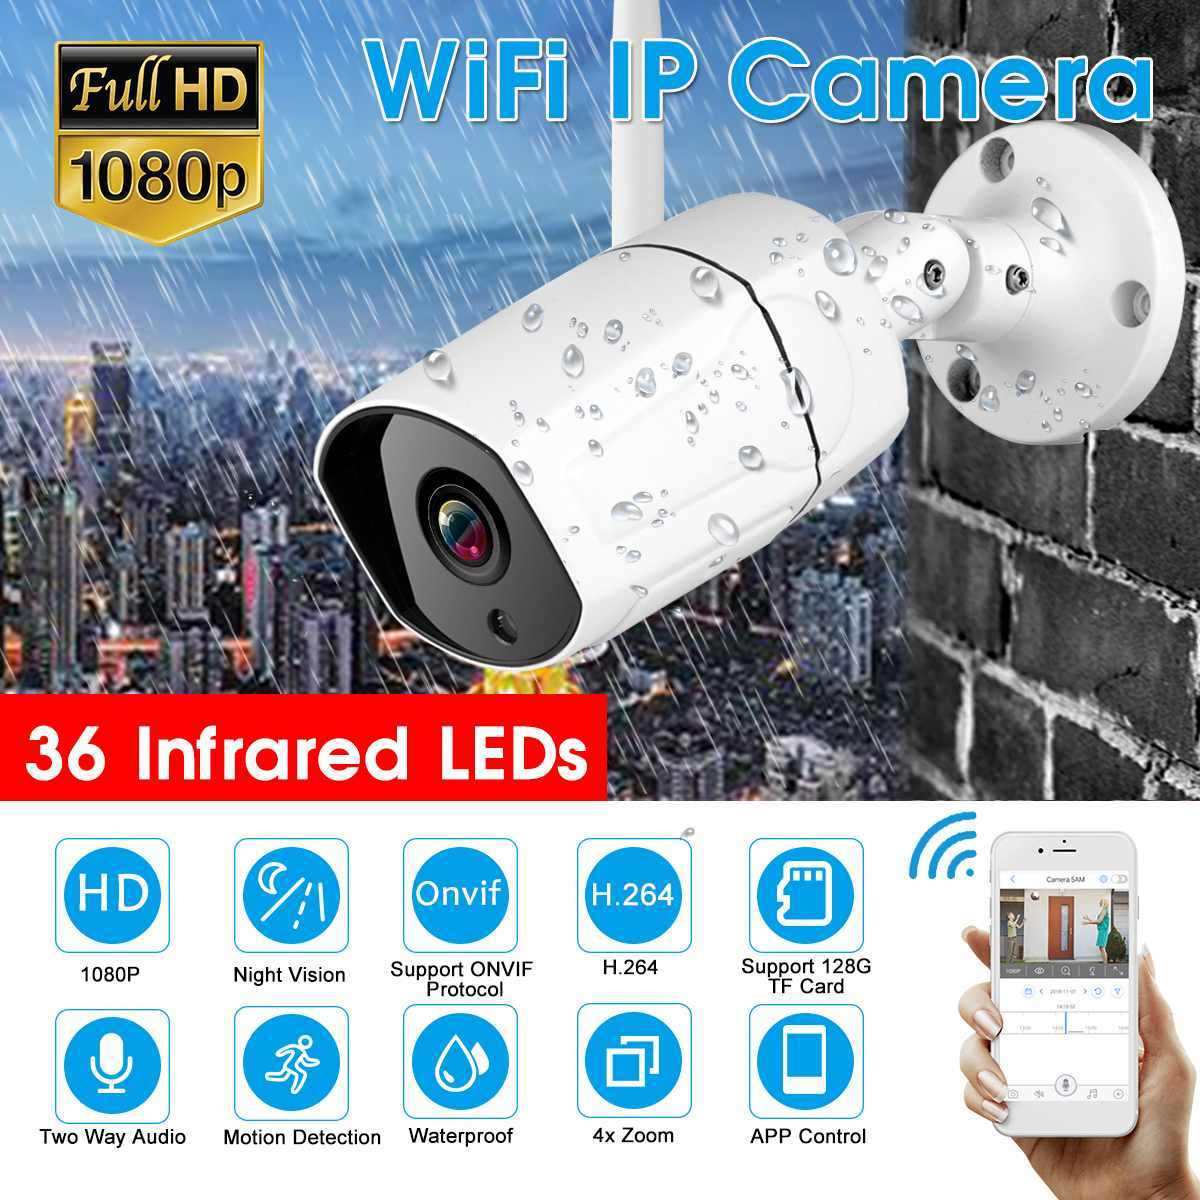 IP Camera Wifi Outdoor Waterdichte HD Security Camera Draadloze 1080P Nachtzicht Bewakingscamera CCTV Onvif Compatibel